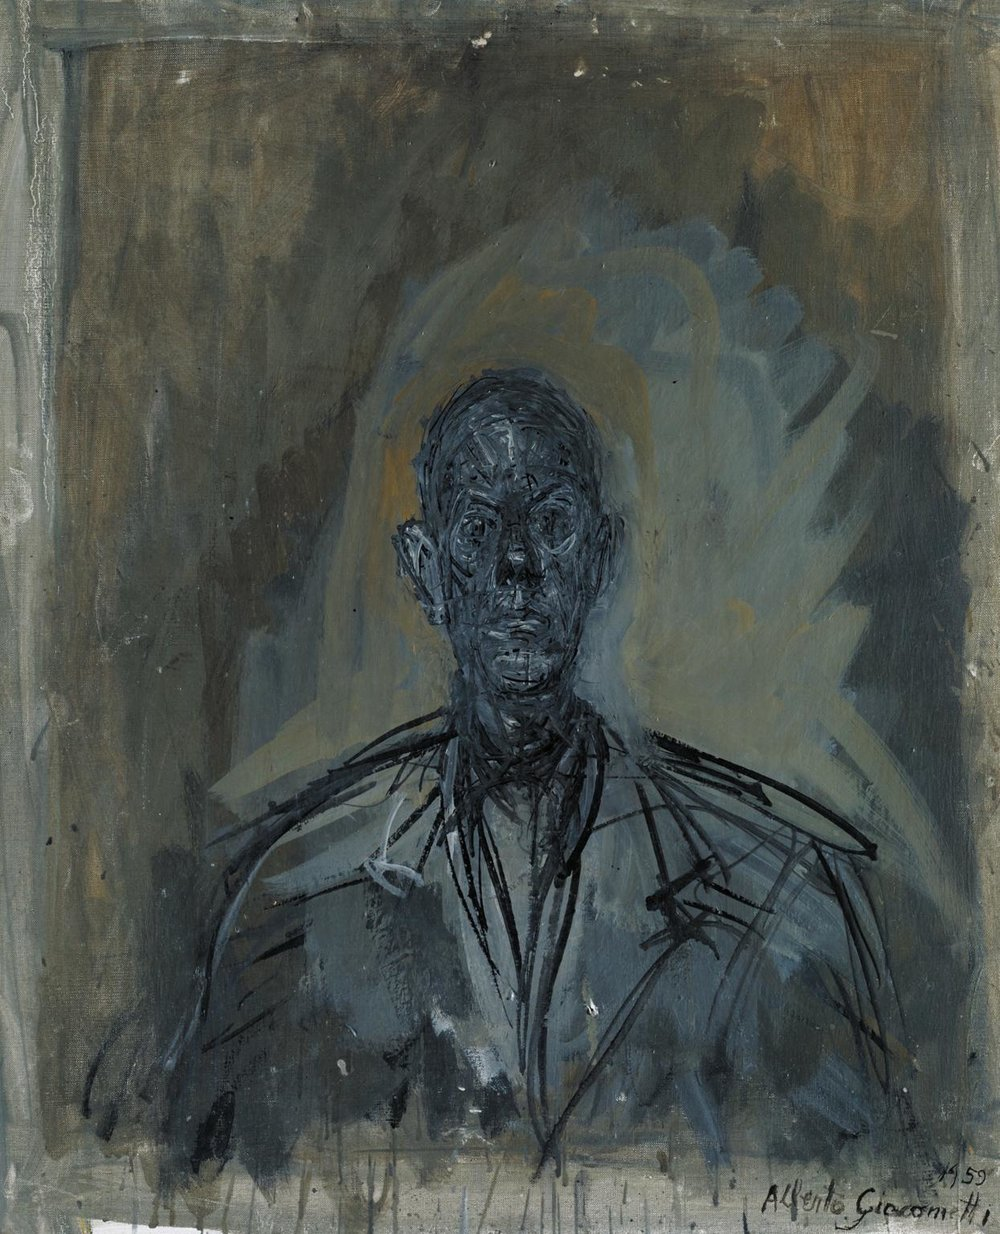 Diego © The Estate of Alberto Giacometti (Fondation Giacometti, Paris and ADAGP, Paris), licensed in the UK by ACS and DACS, London 2017